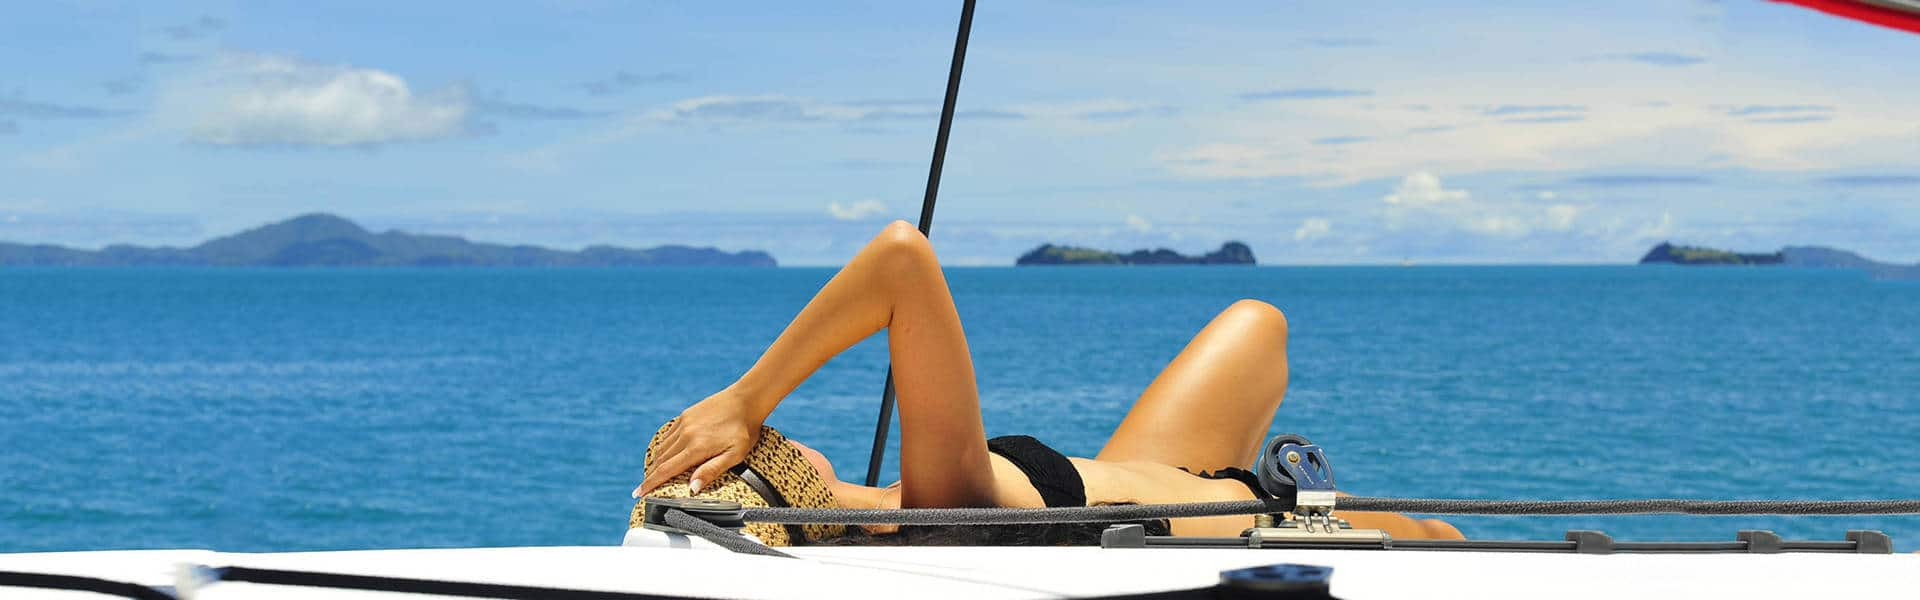 Whitsunday Holiday Yachting